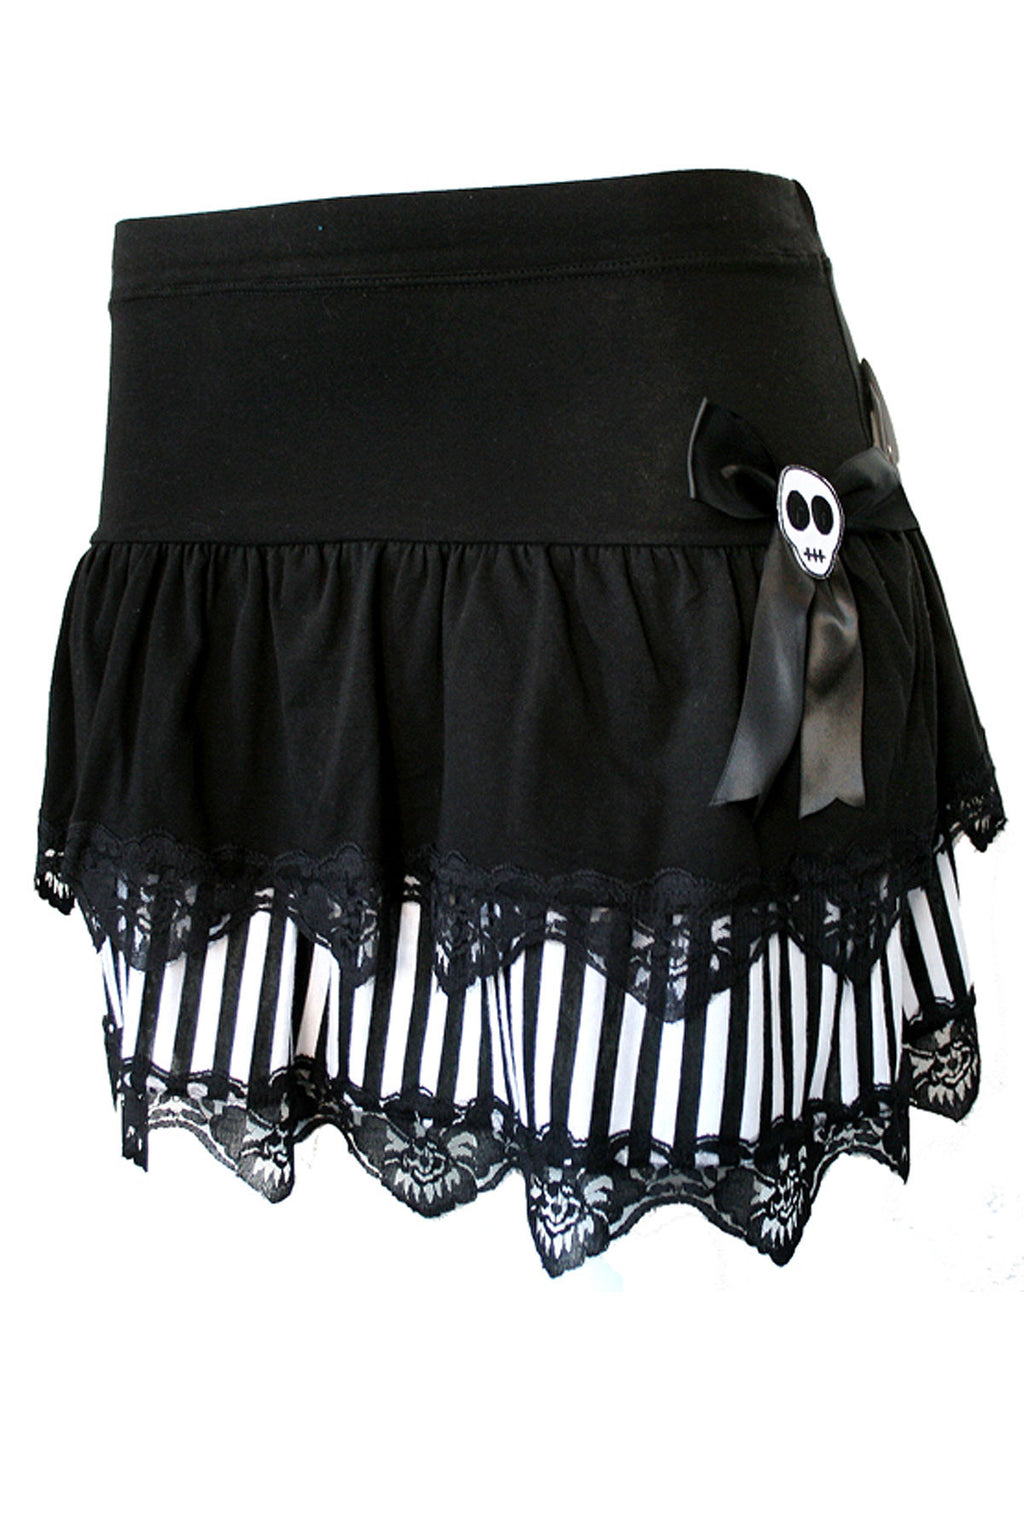 Mixed Layer Skull Skirt - shopjessicalouise.com